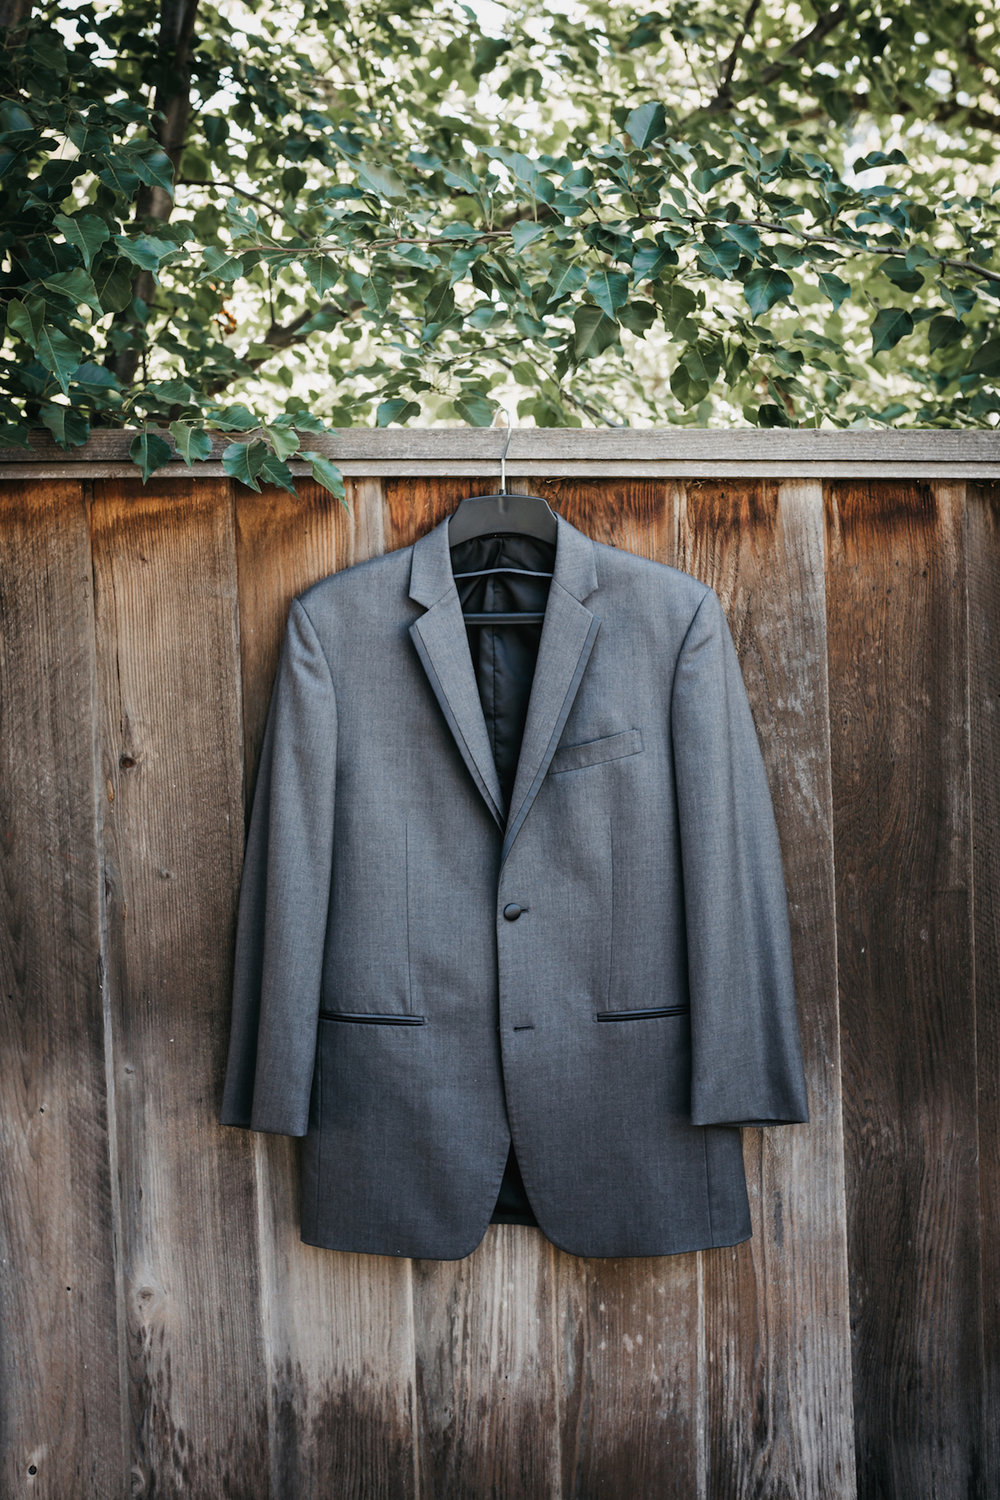 Groom Details Suit Jacket.jpg